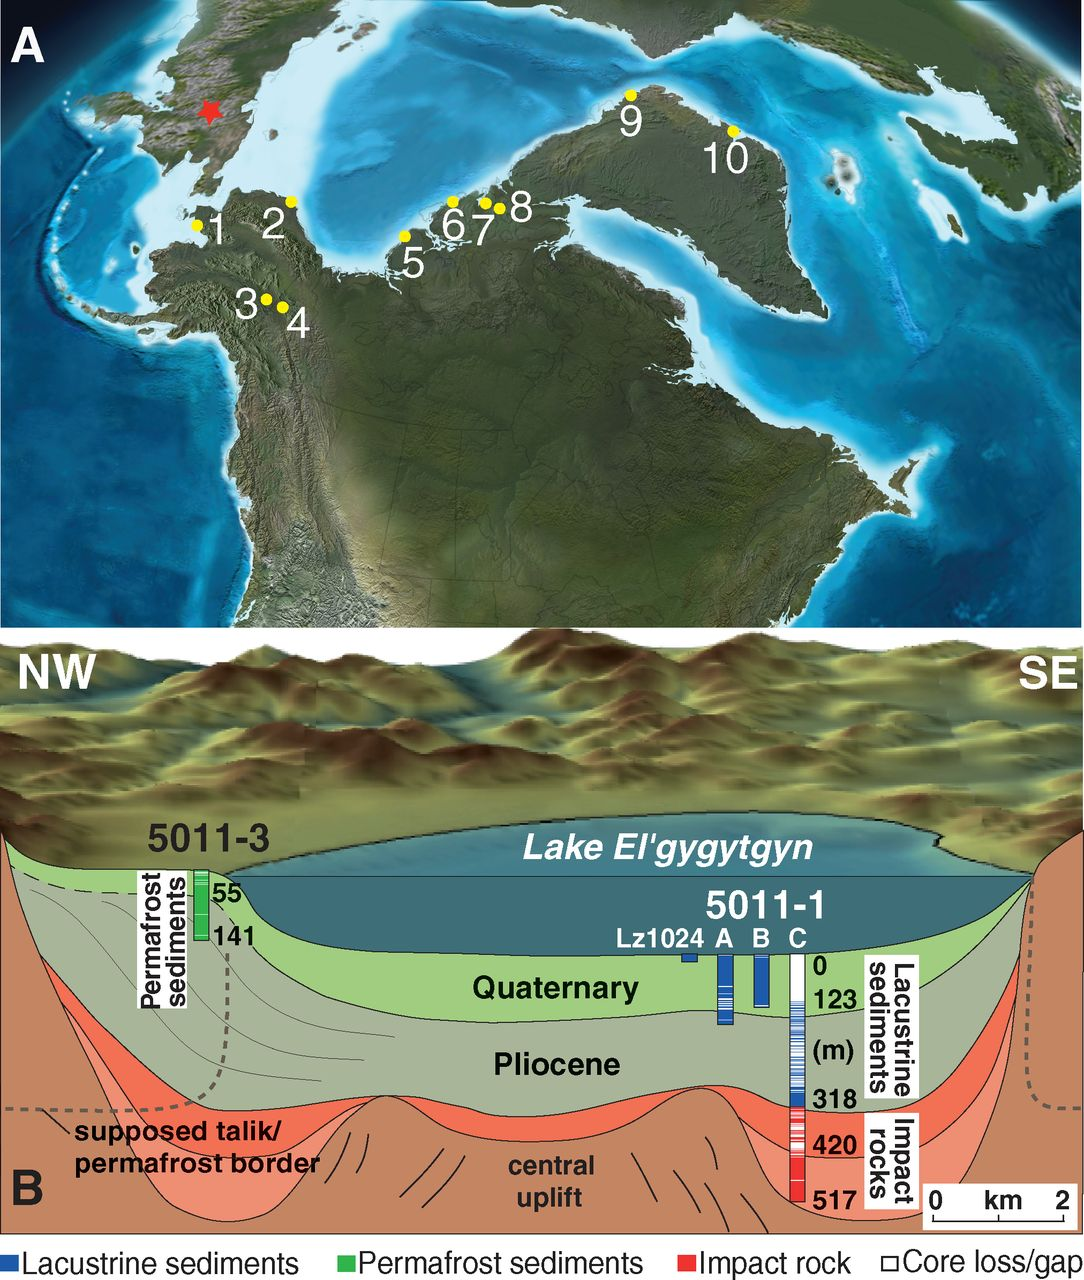 Pliocene Arctic climate - 400ppm CO2 - yet 8 degrees warmer!